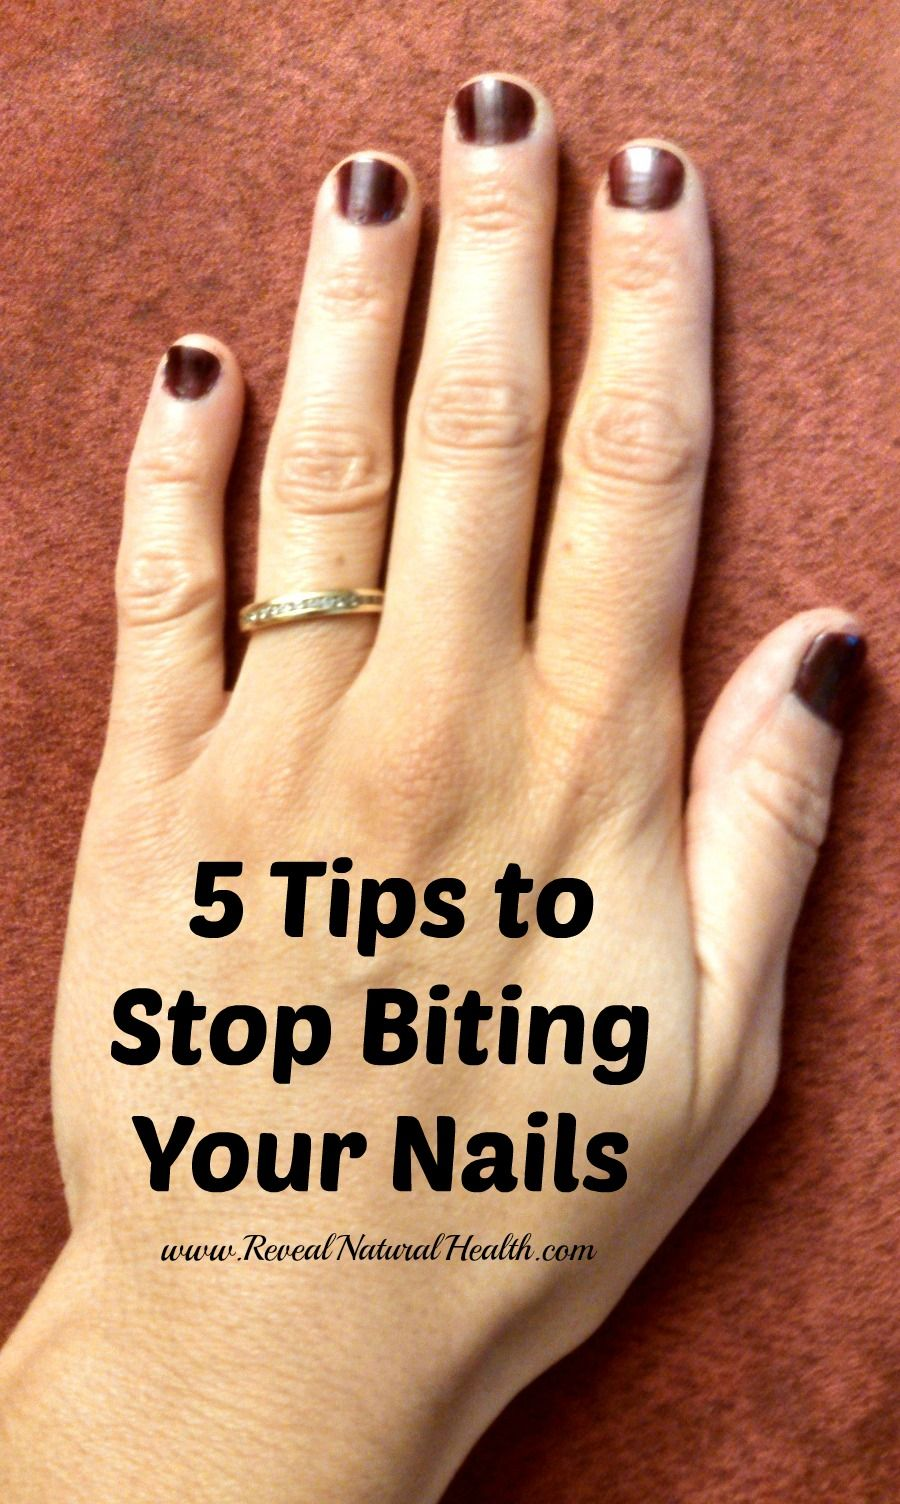 5 Tips to Stop Biting Your Nails | Pinterest | Natural health ...